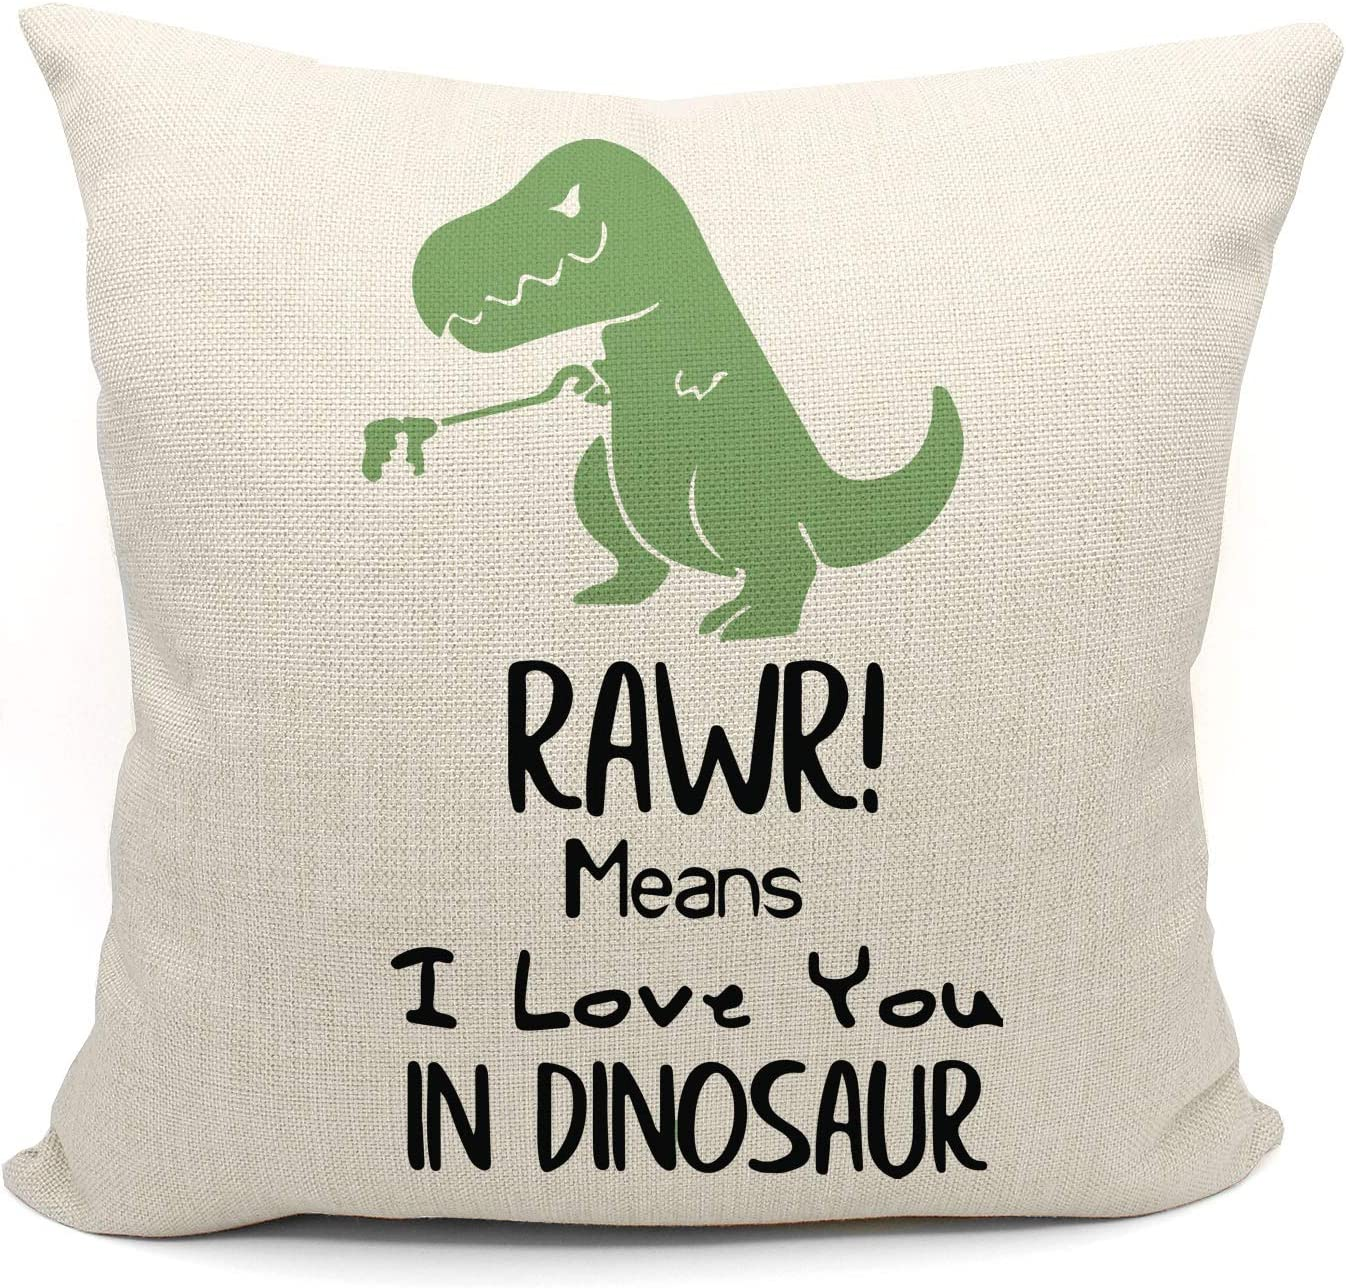 Mancheng-zi RAWR Means I Love You in Dinosaur Pillow case for Son, Daughter, Children, Dinosaur Room Decor, Funny Tyrannosaurus Cotton Linen Cushion Cover Decoration for Sofa Couch Bed 18 x 18 Inch